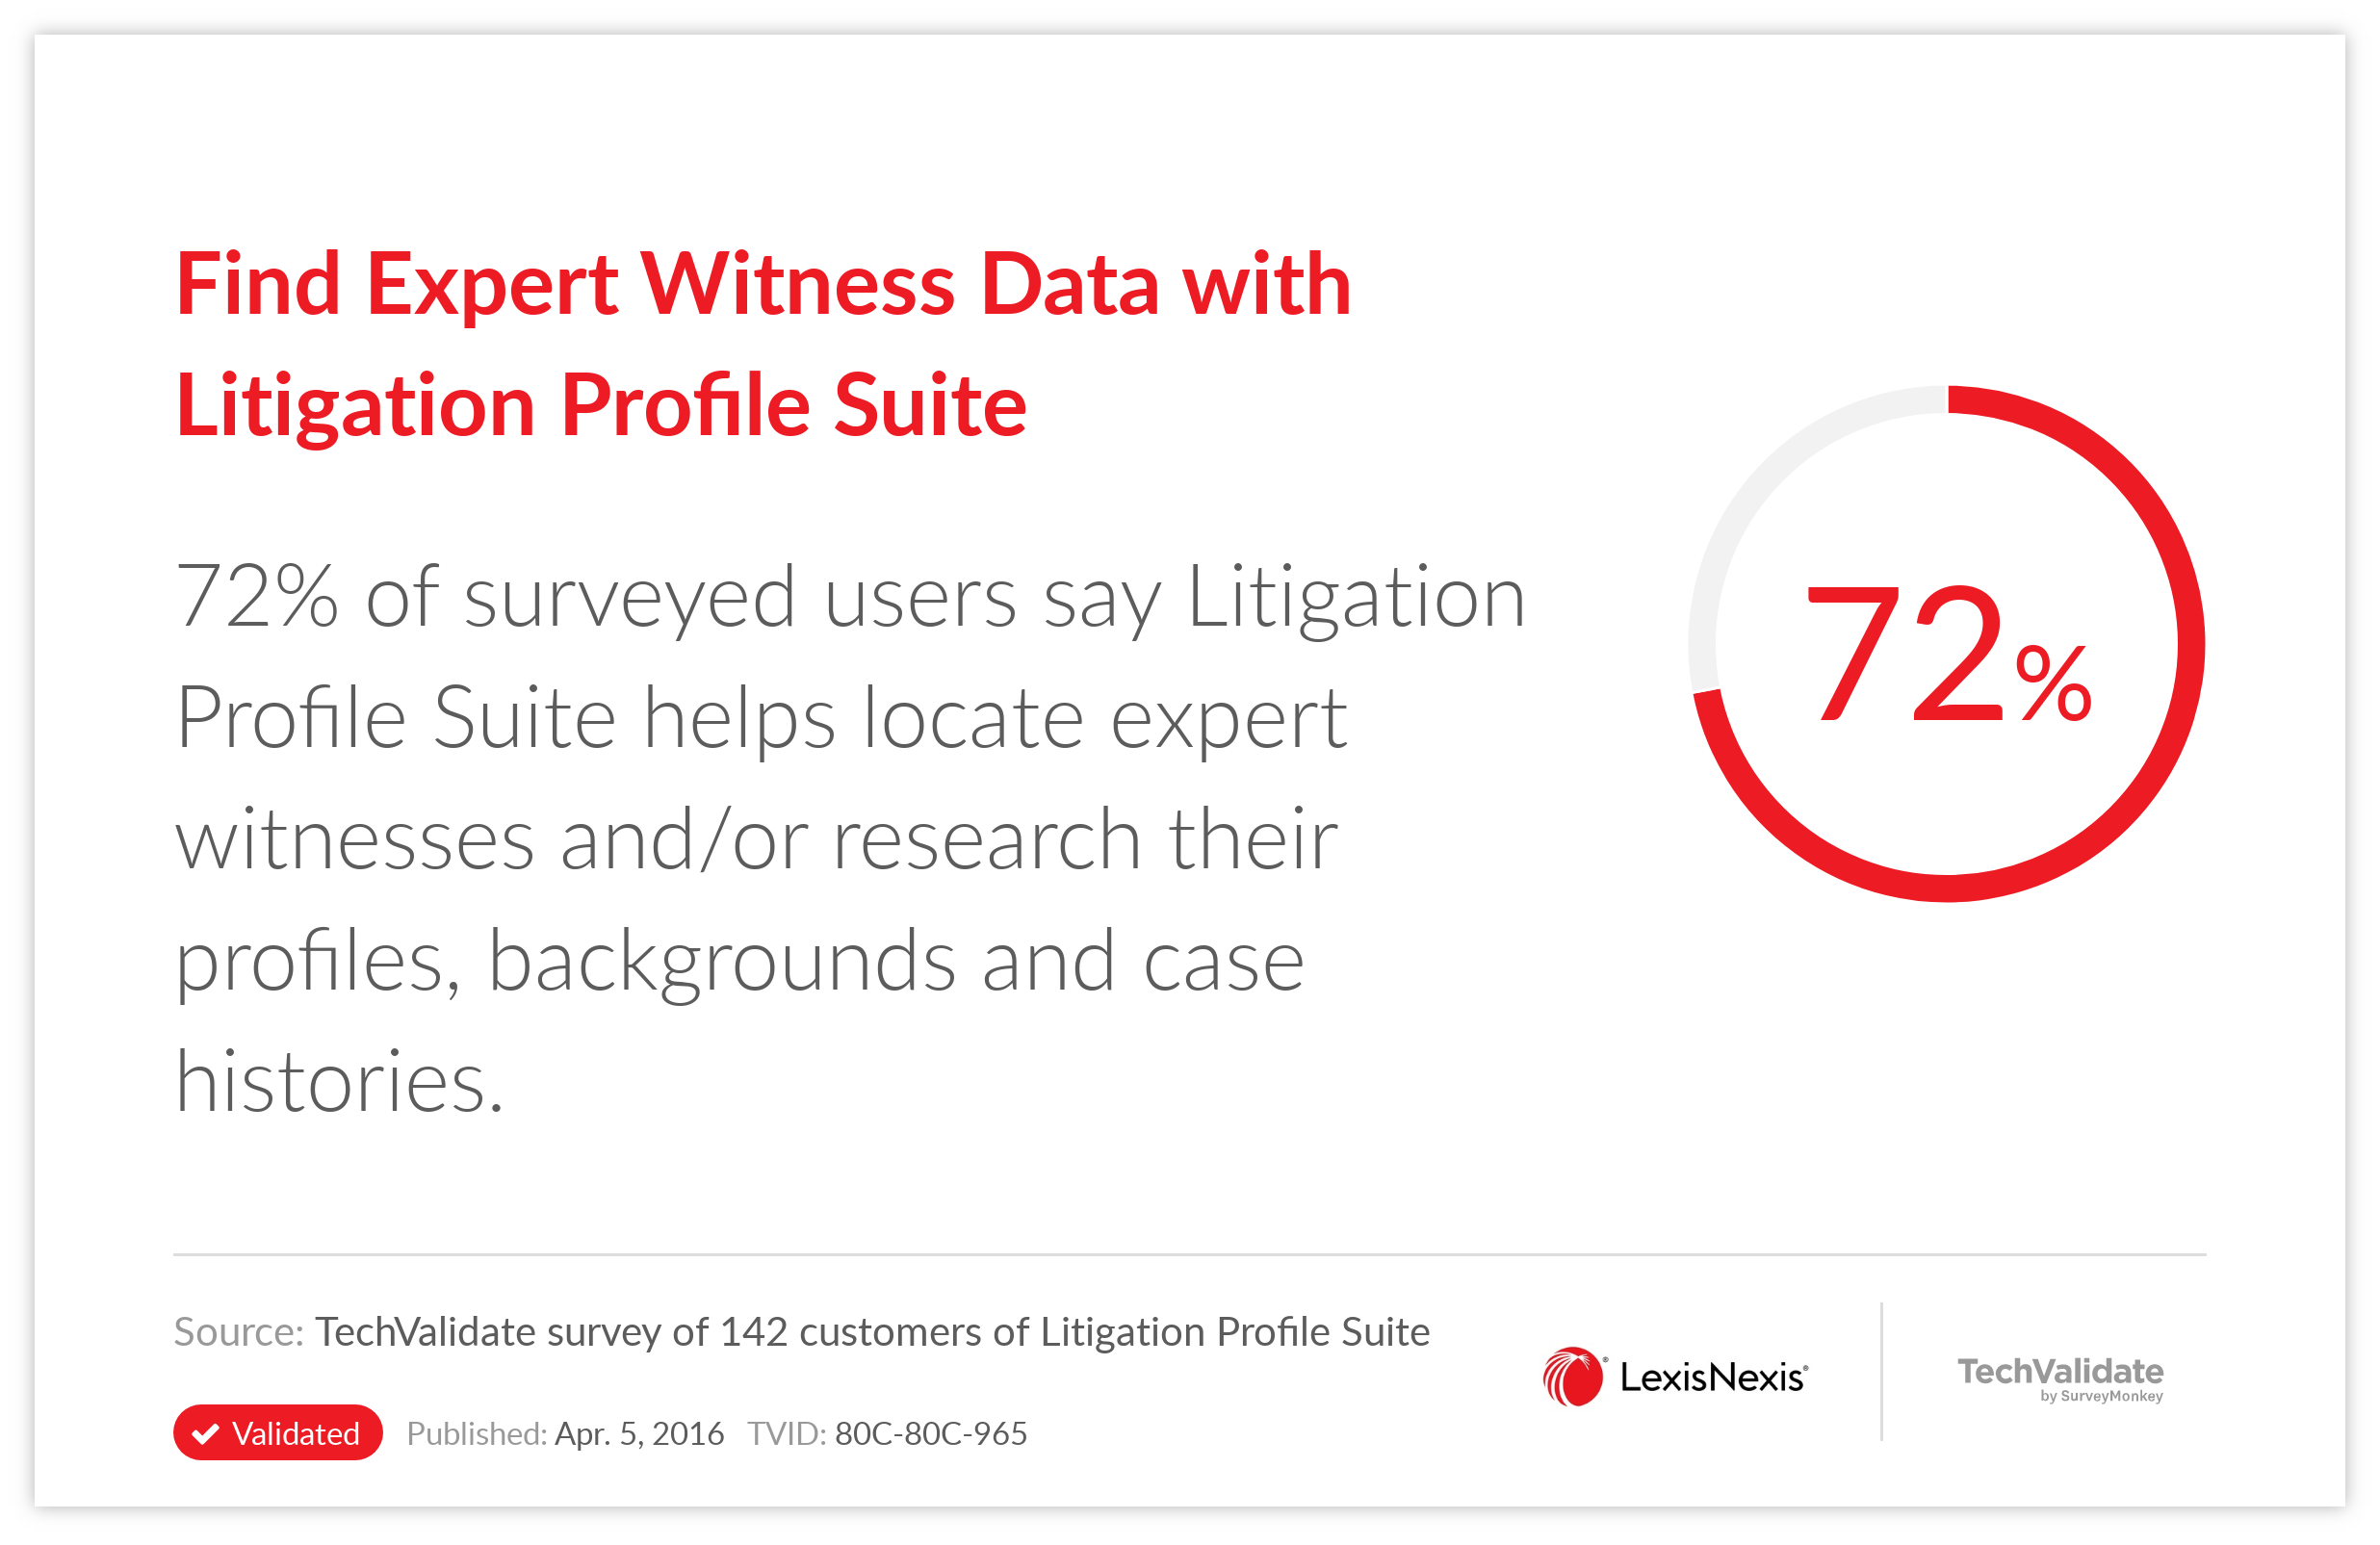 Find Expert Witness Data with Litigation Profile Suite